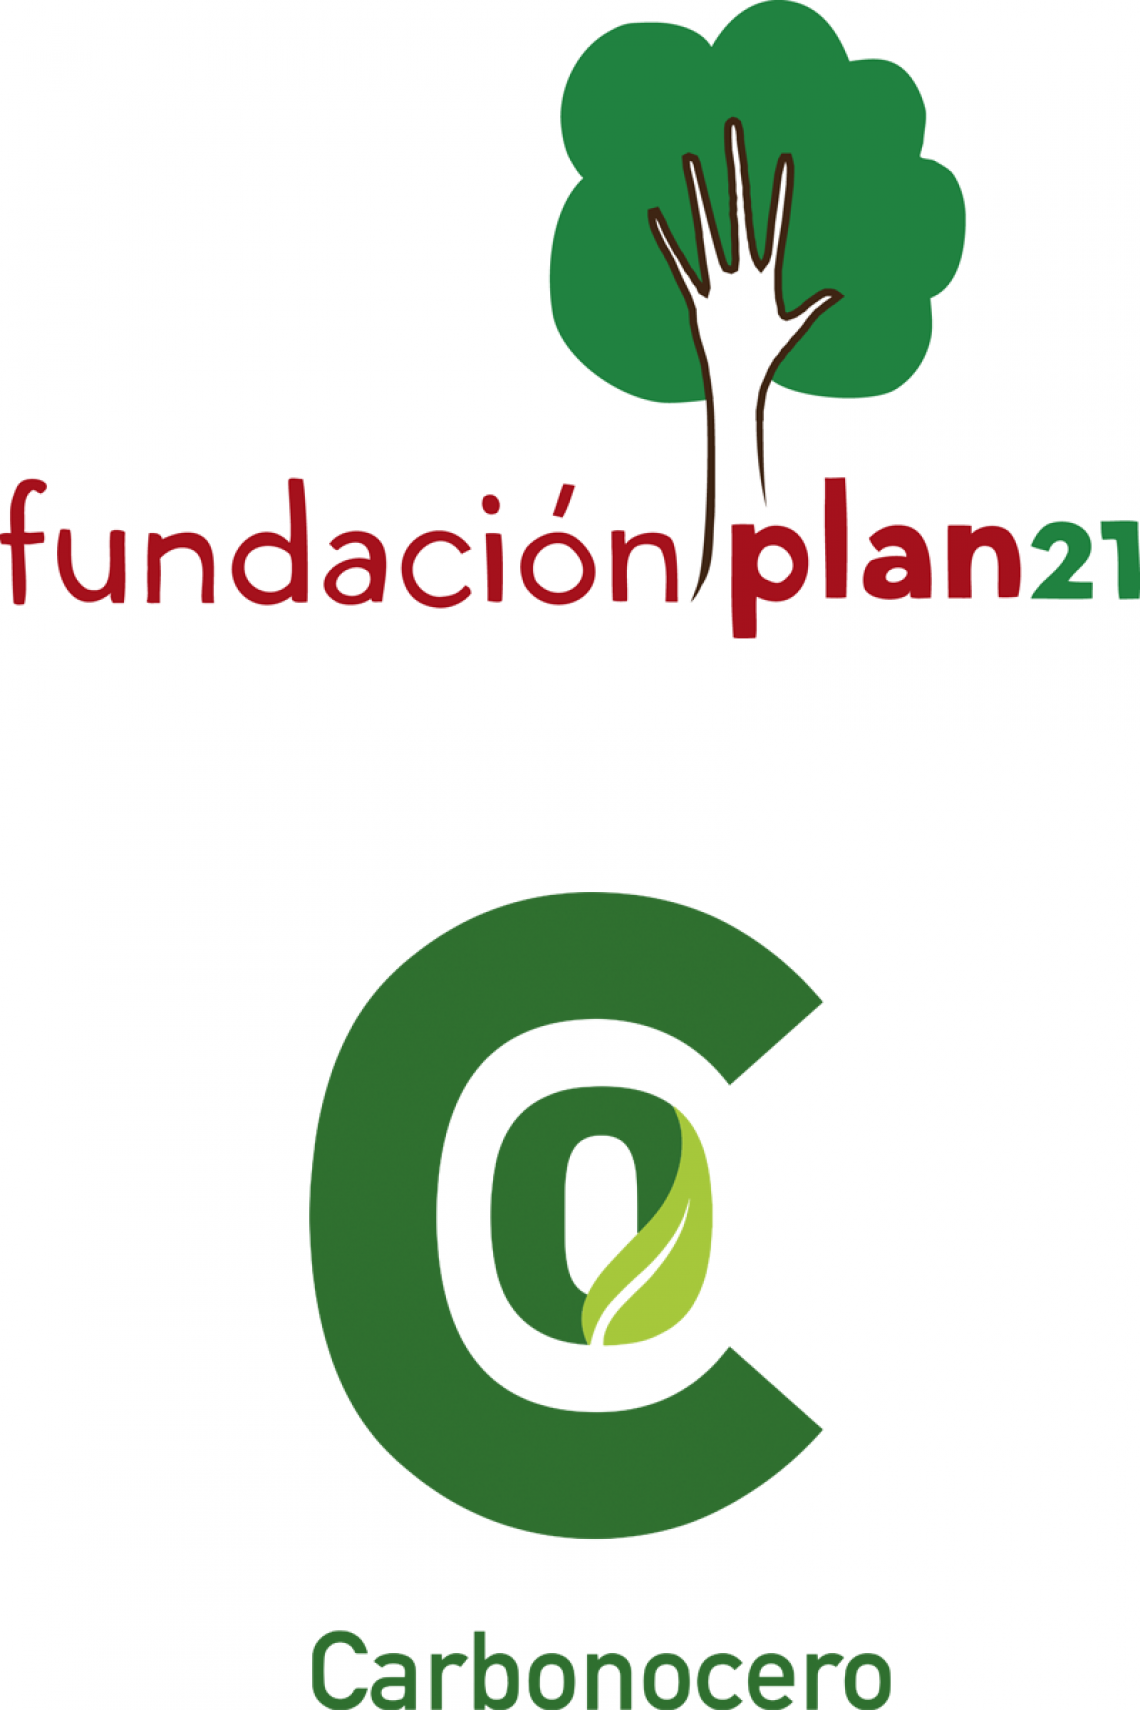 Logo Plan 21 / Carboncero